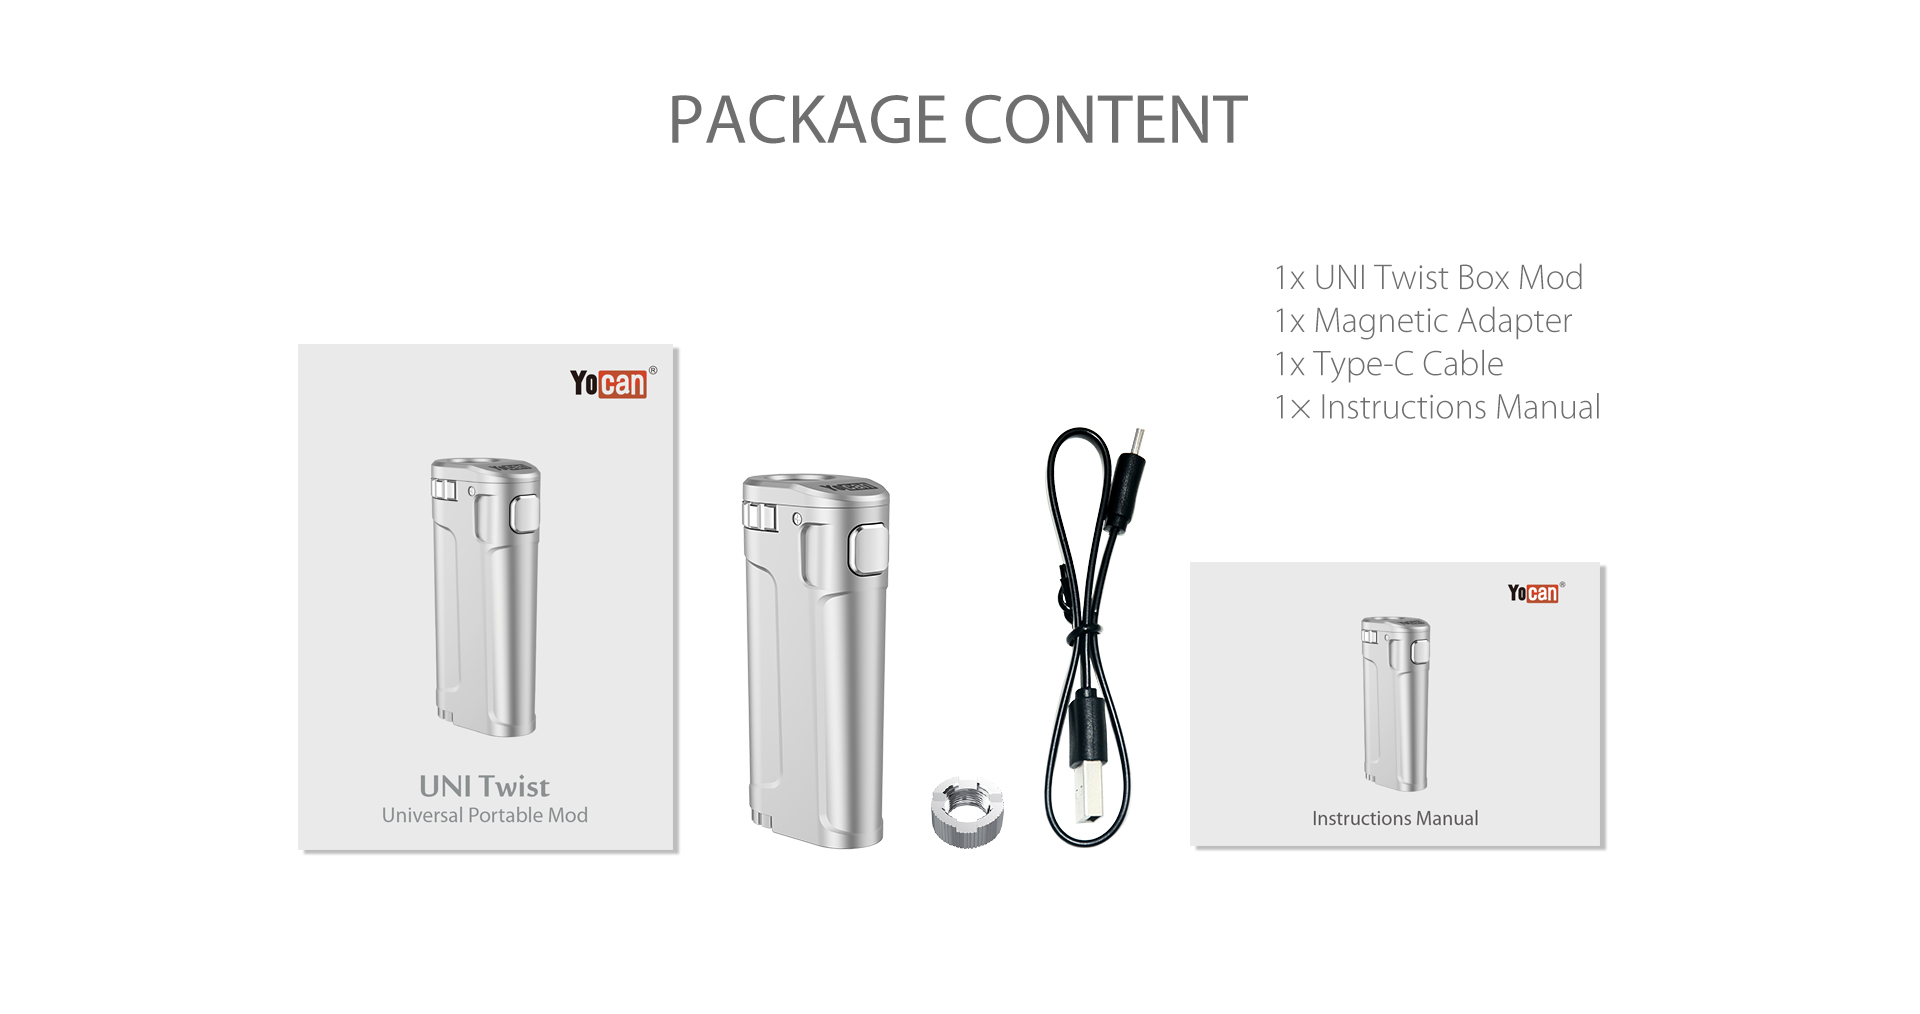 The package content of Yocan UNI Twist Universal Portable Mod.